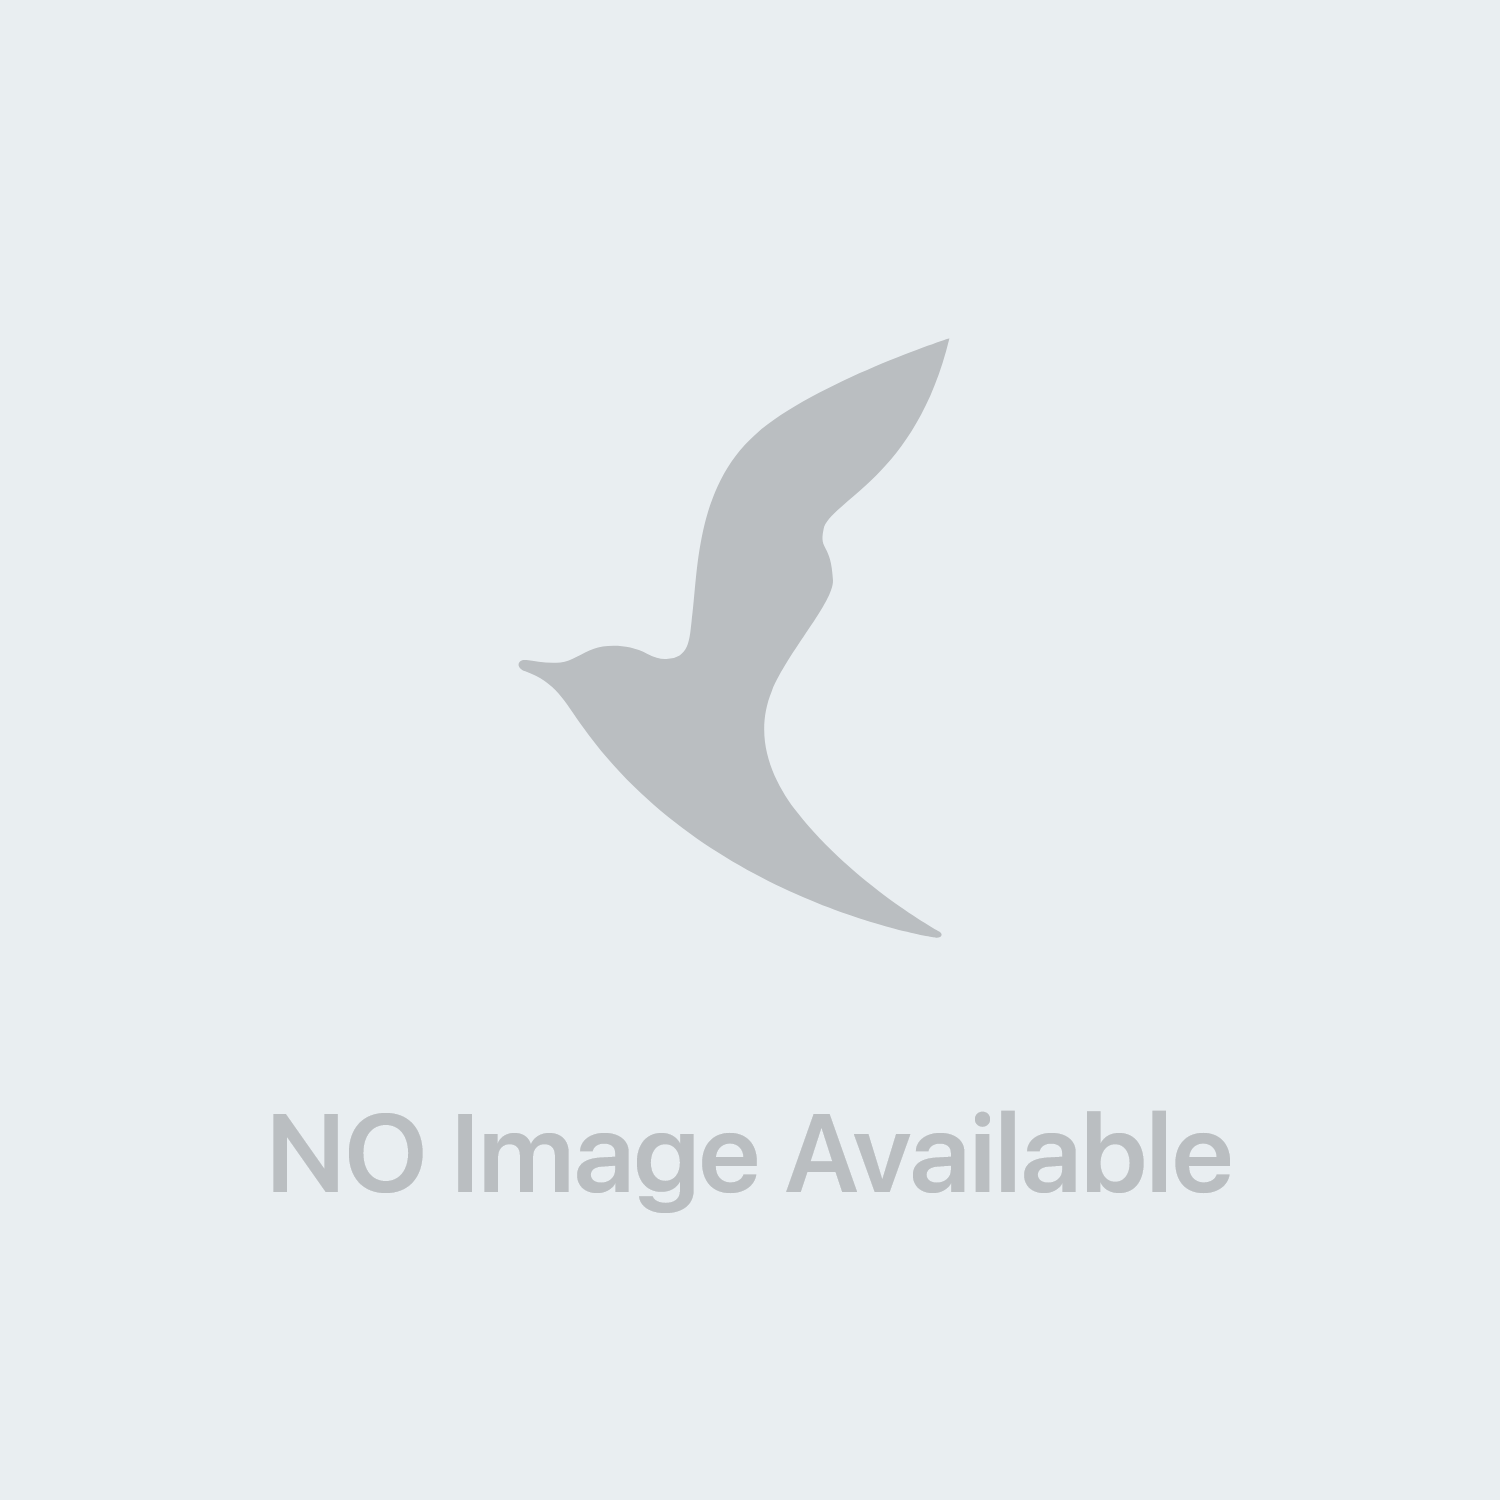 Kilocal Integratore Dimagrante 20 Compresse